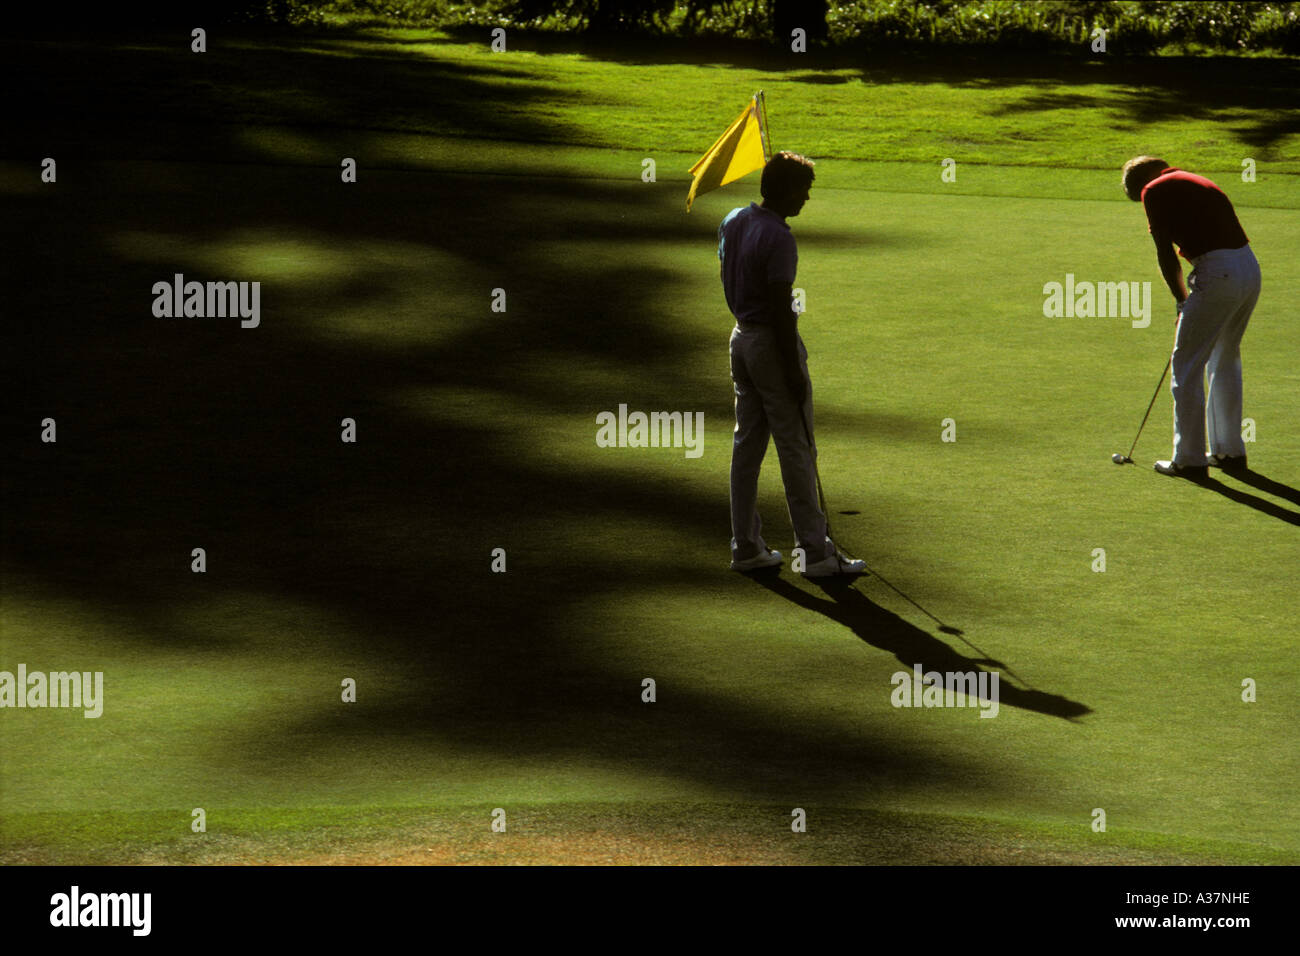 Late afternoon shadows stretch across a putting green as two golfers continue their game - Stock Image